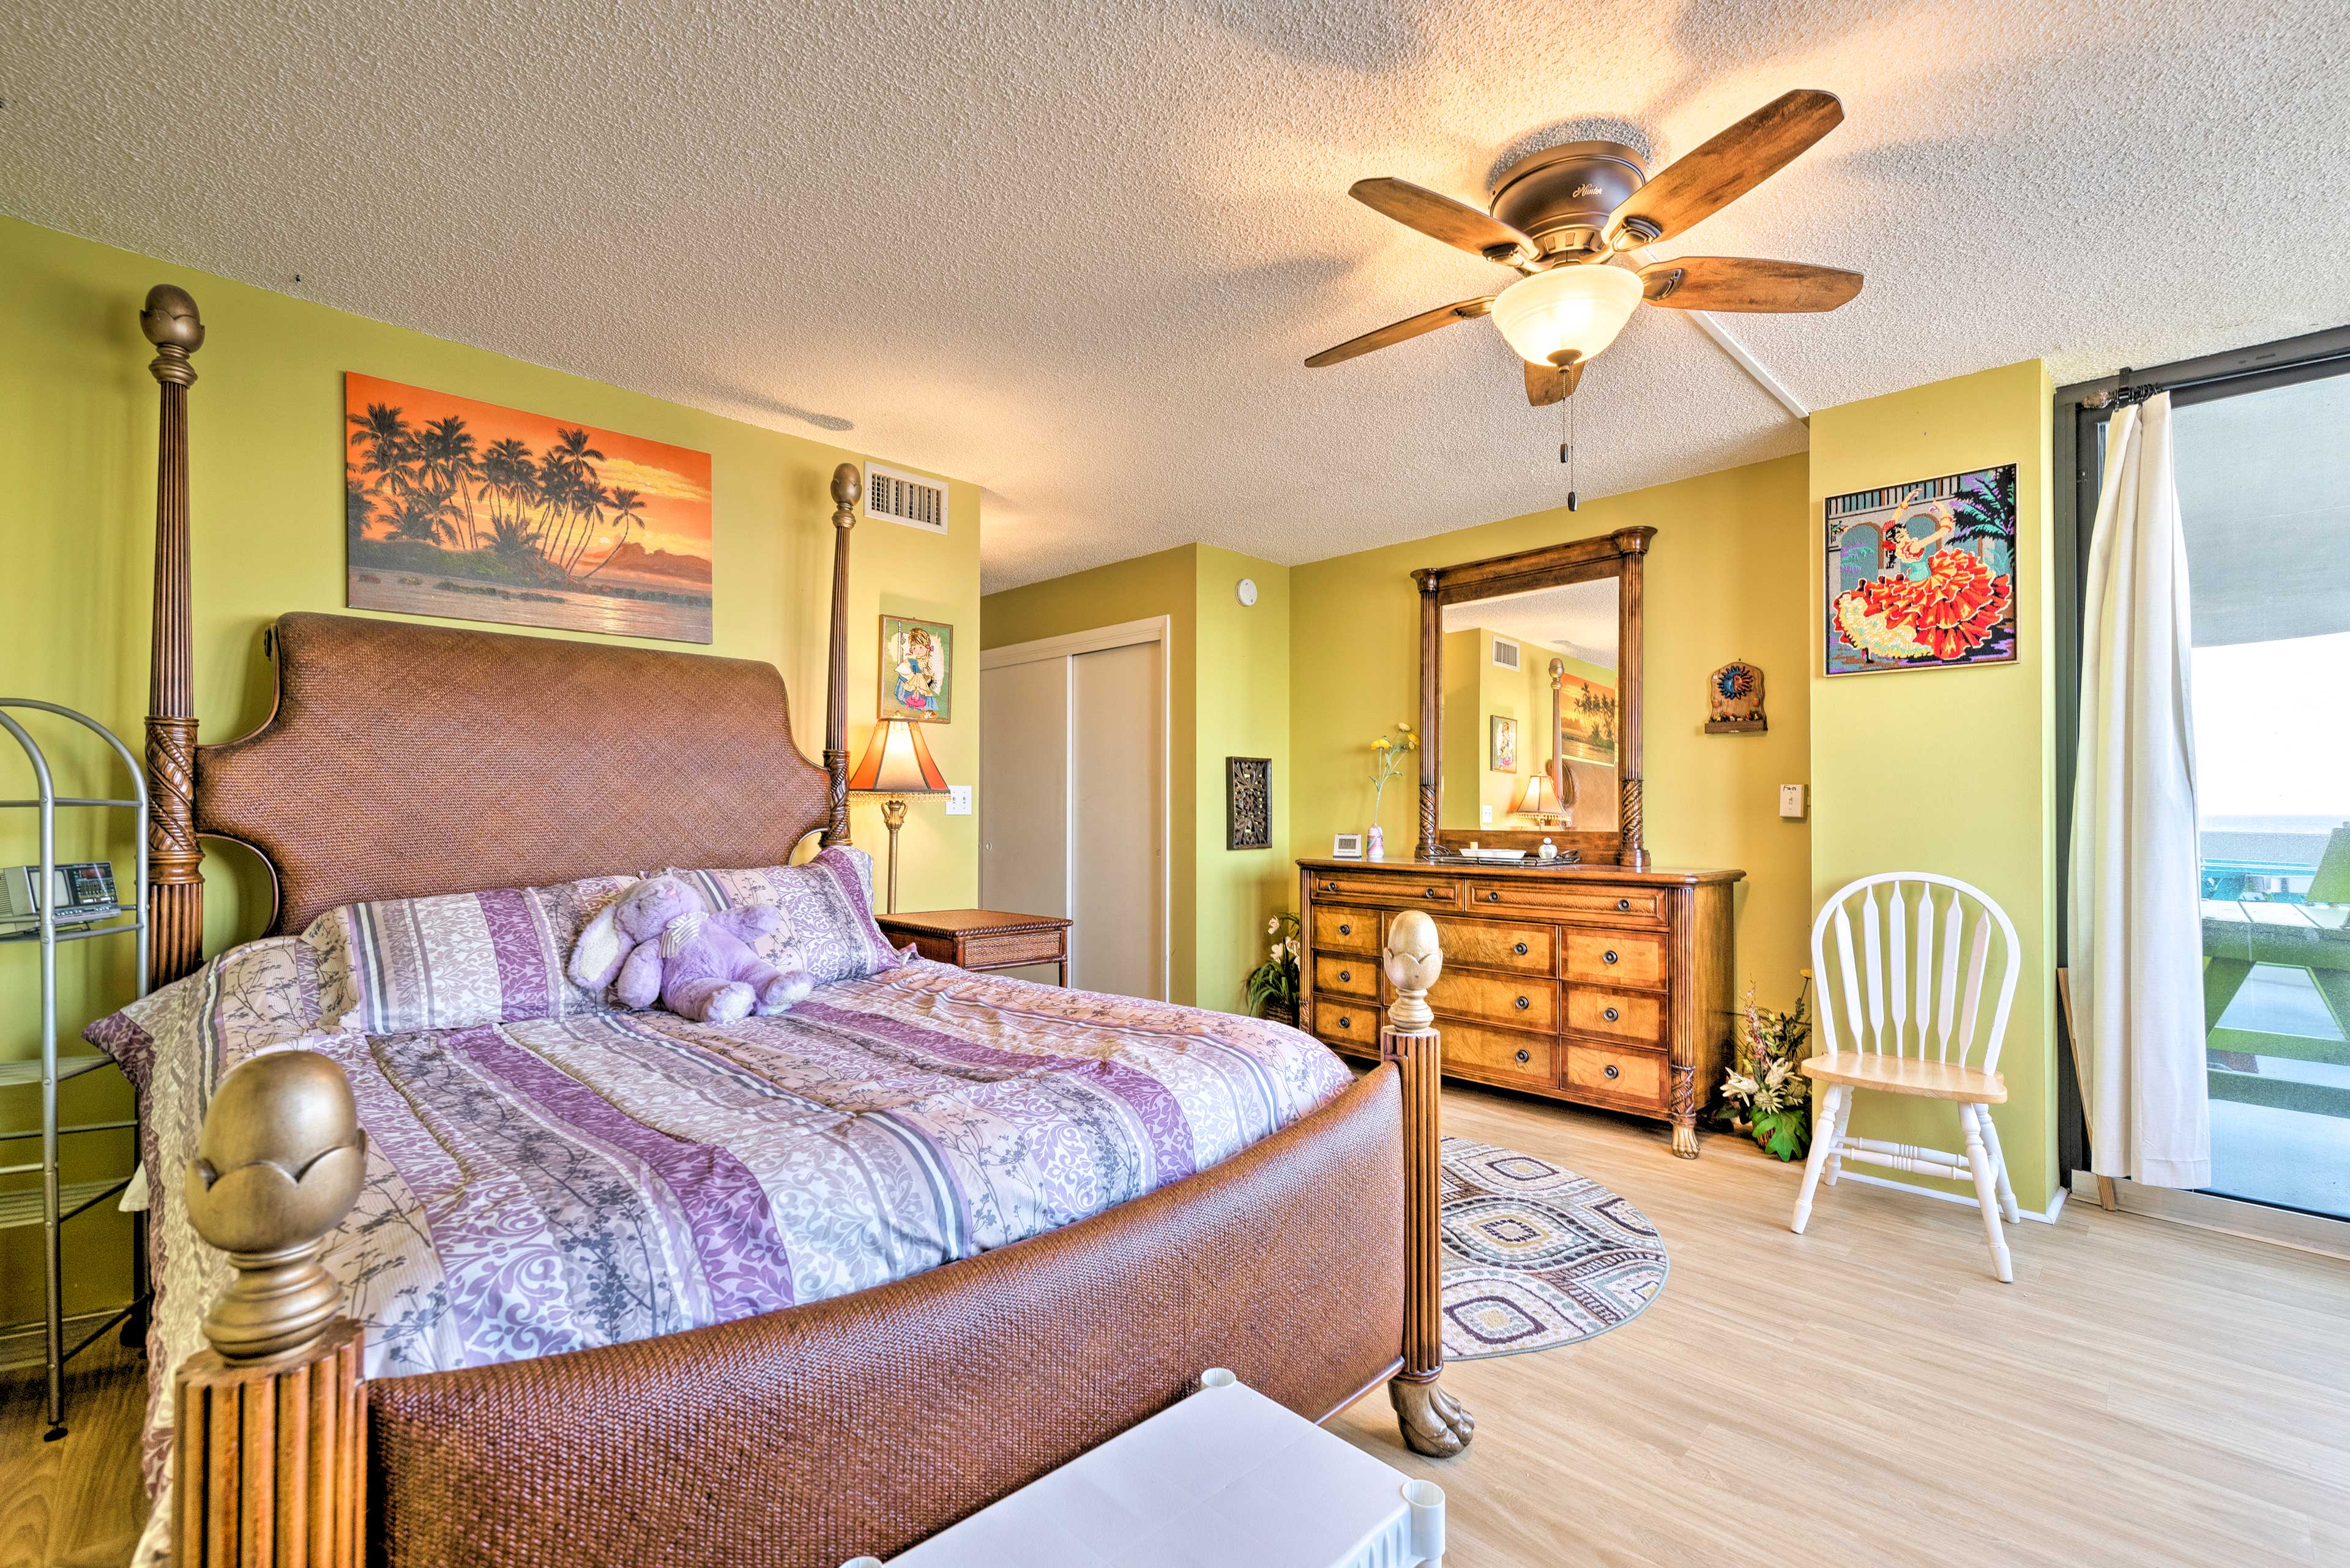 Bedroom 2 boasts eclectic decor throughout.